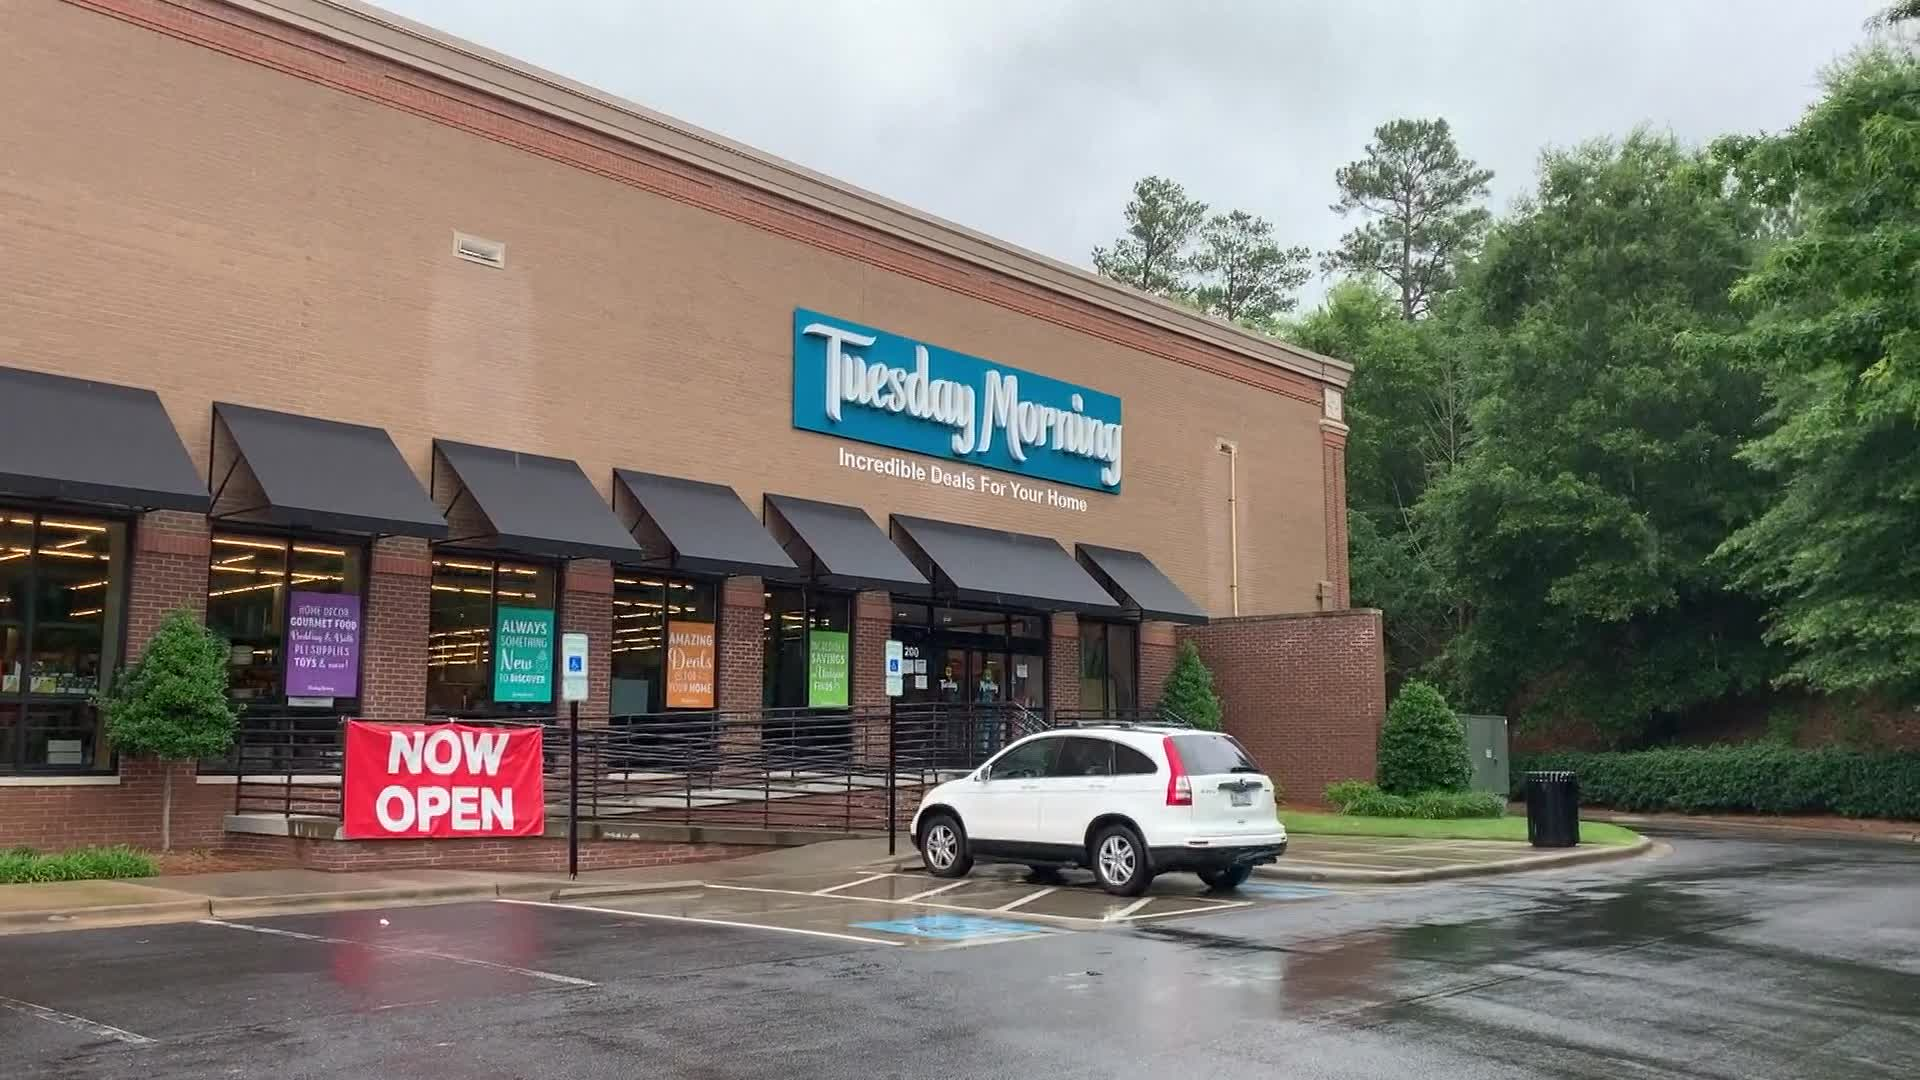 Tuesday Morning files Chapter 11 bankruptcy